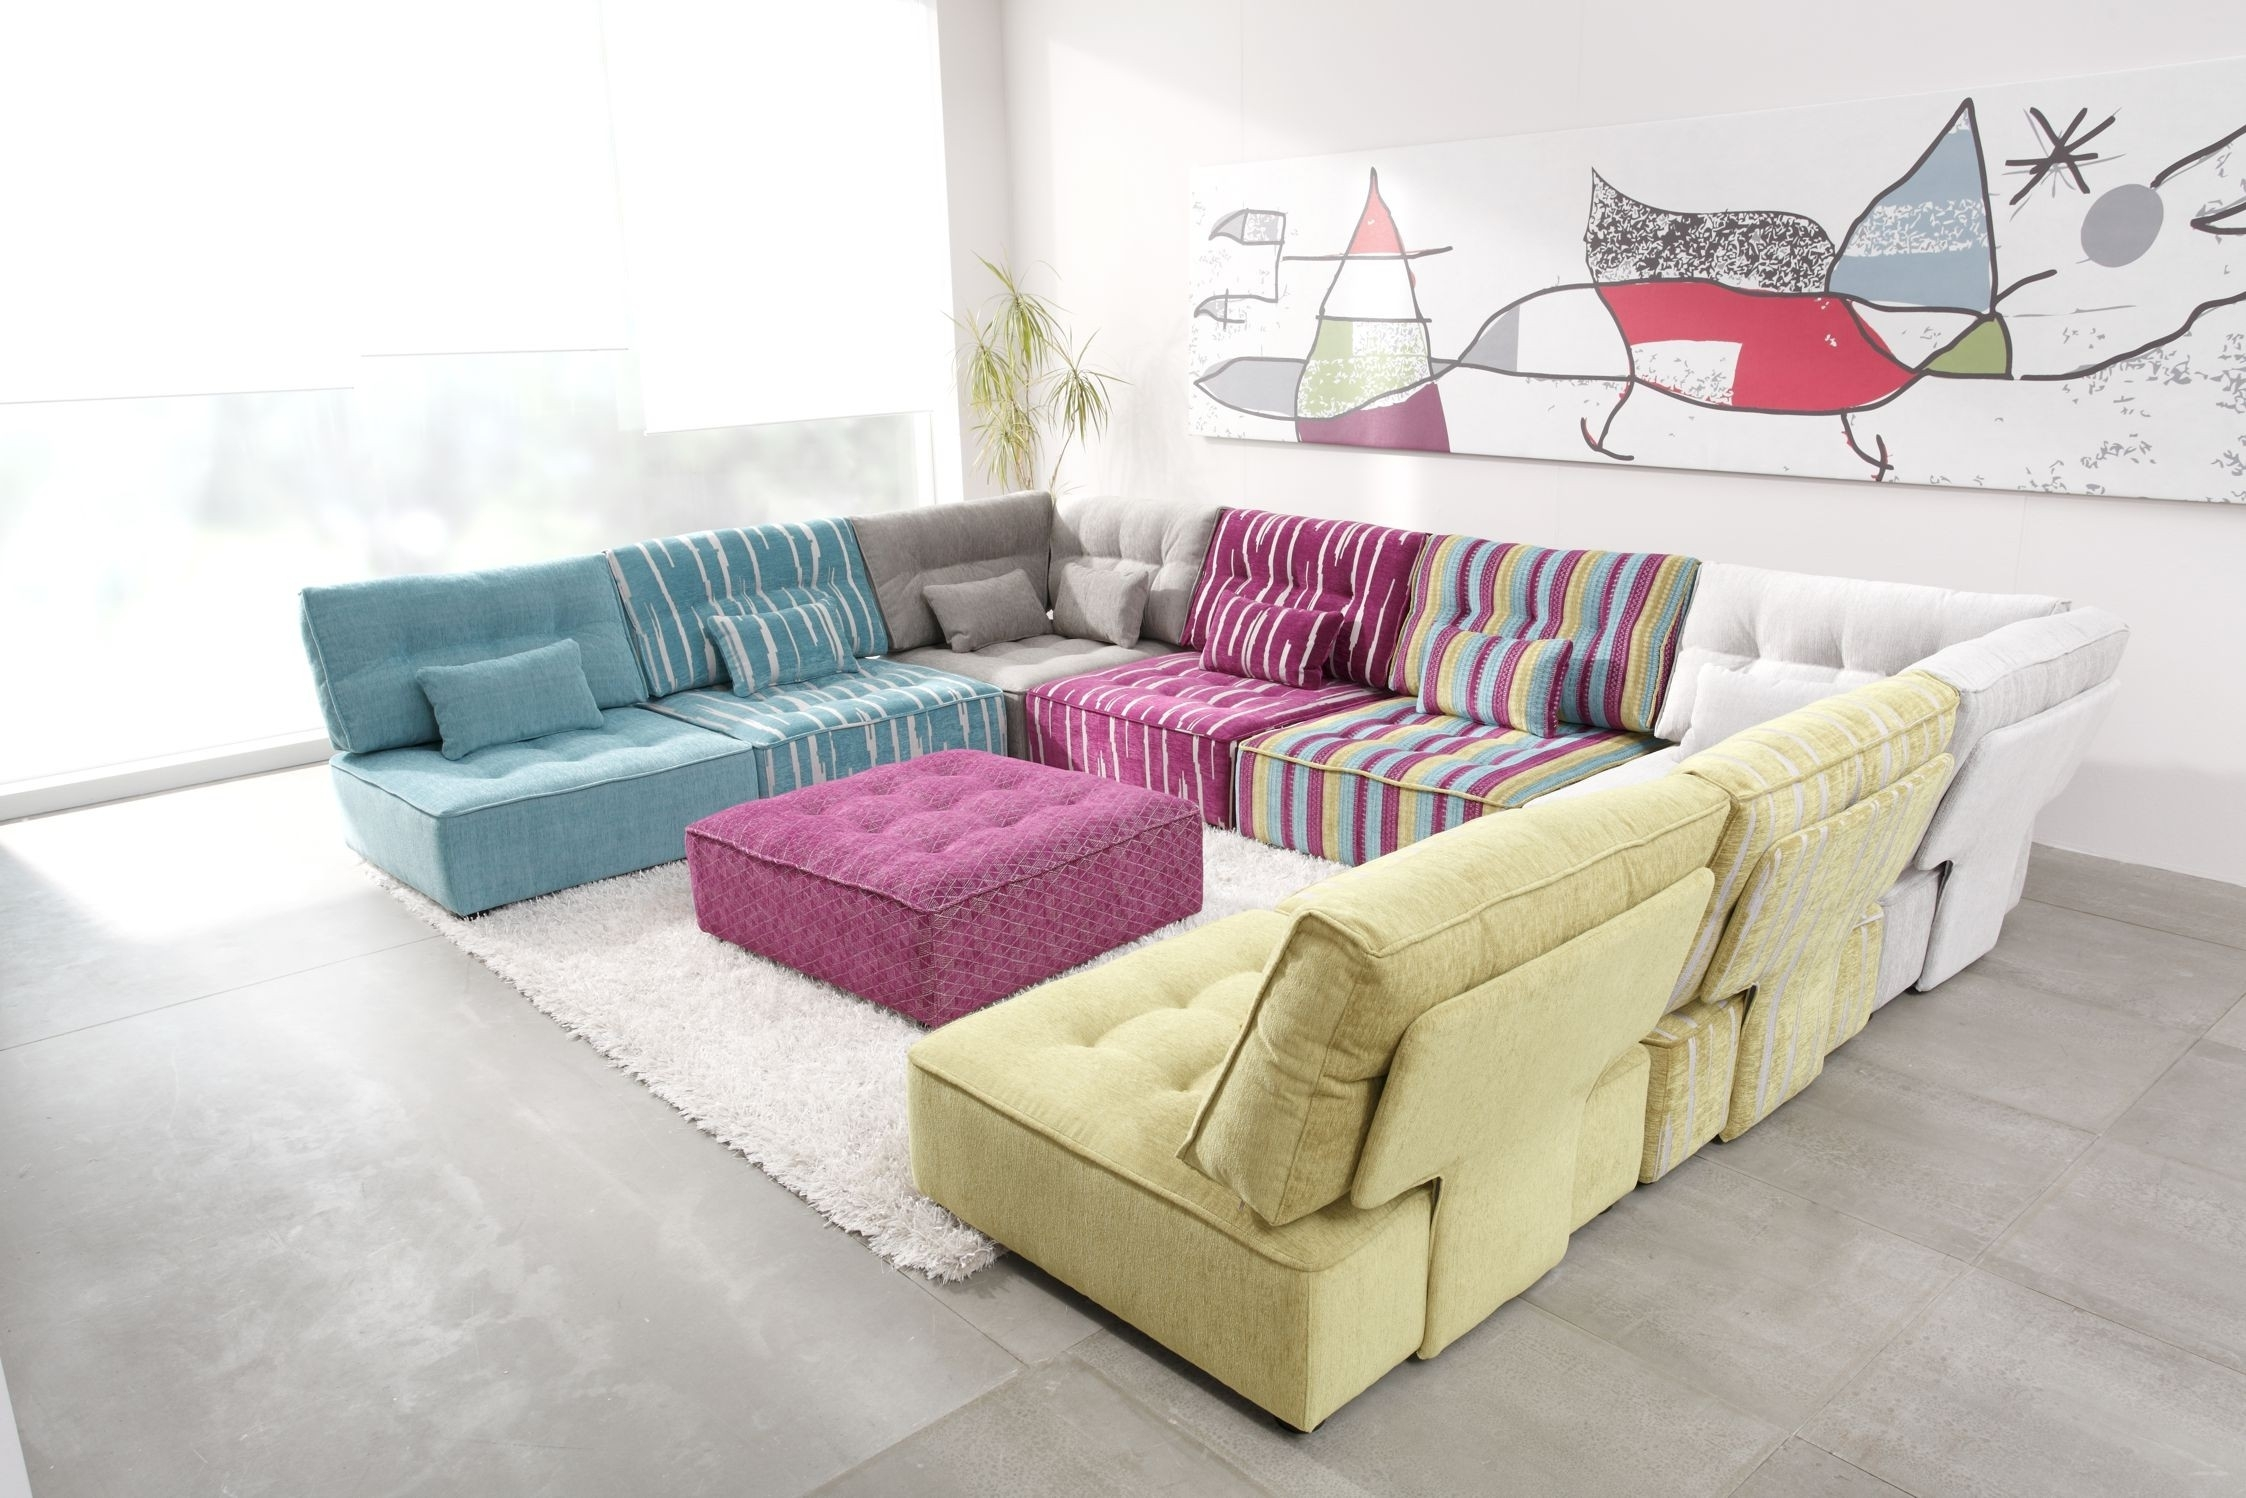 Arianne Modern Modular Sectional Sofa | Fama Sofas In Modular Sectional Sofas (View 10 of 10)